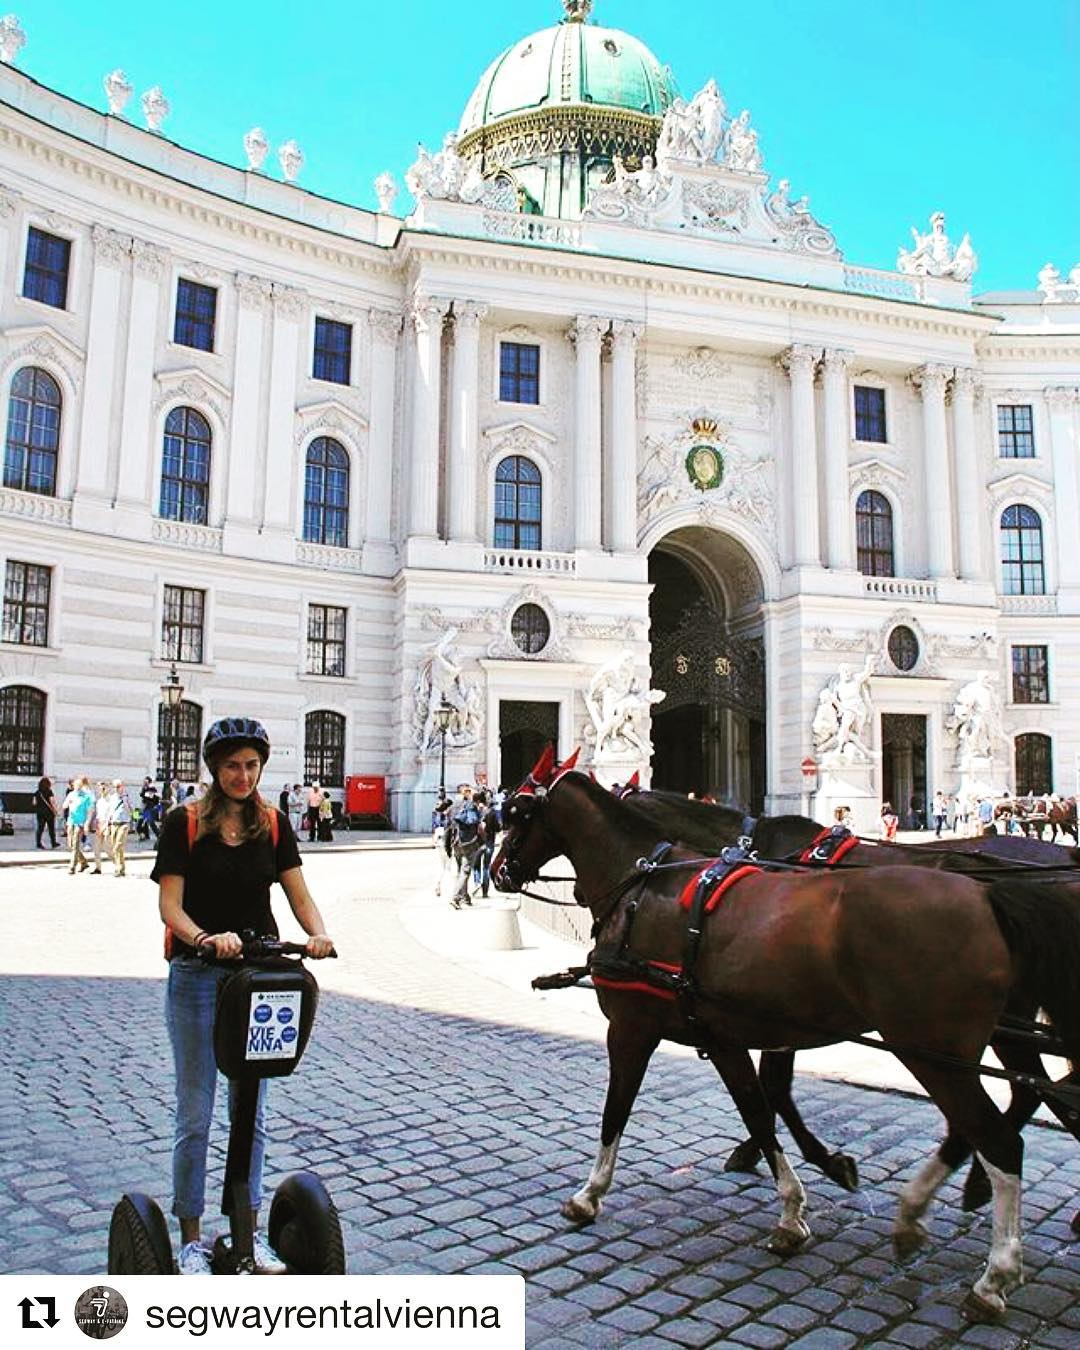 Travel by segway or horse drawn carriage ? We choose the segway for touring Vienna Austria 🇦🇹 Plus Segway's don't require quite as much hay and oats . . . @segwayrentalvienna ・・・ The Michaelerplatz is one of the most beautiful and famous squares in Vienna. It's also the most visited one. It's architecture and appearance is elegant and noble, with the presence of historically important buildings and it's own historical importance. Take the Segway and explore this place!